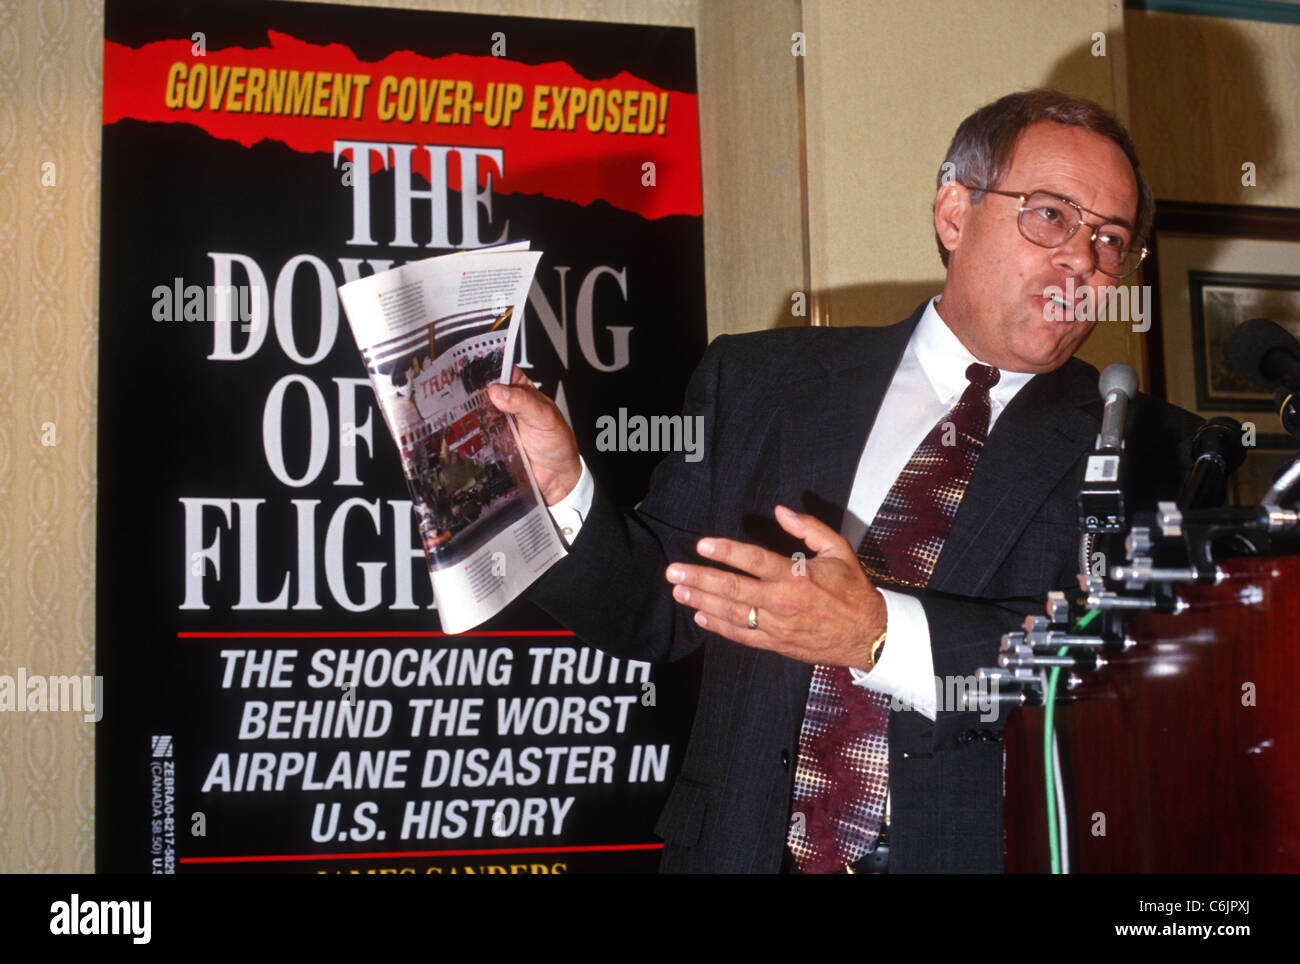 Investigative reporter Jim Sanders holds a press conference on the conspiracy behind the crash of TWA Flight 800 - Stock Image